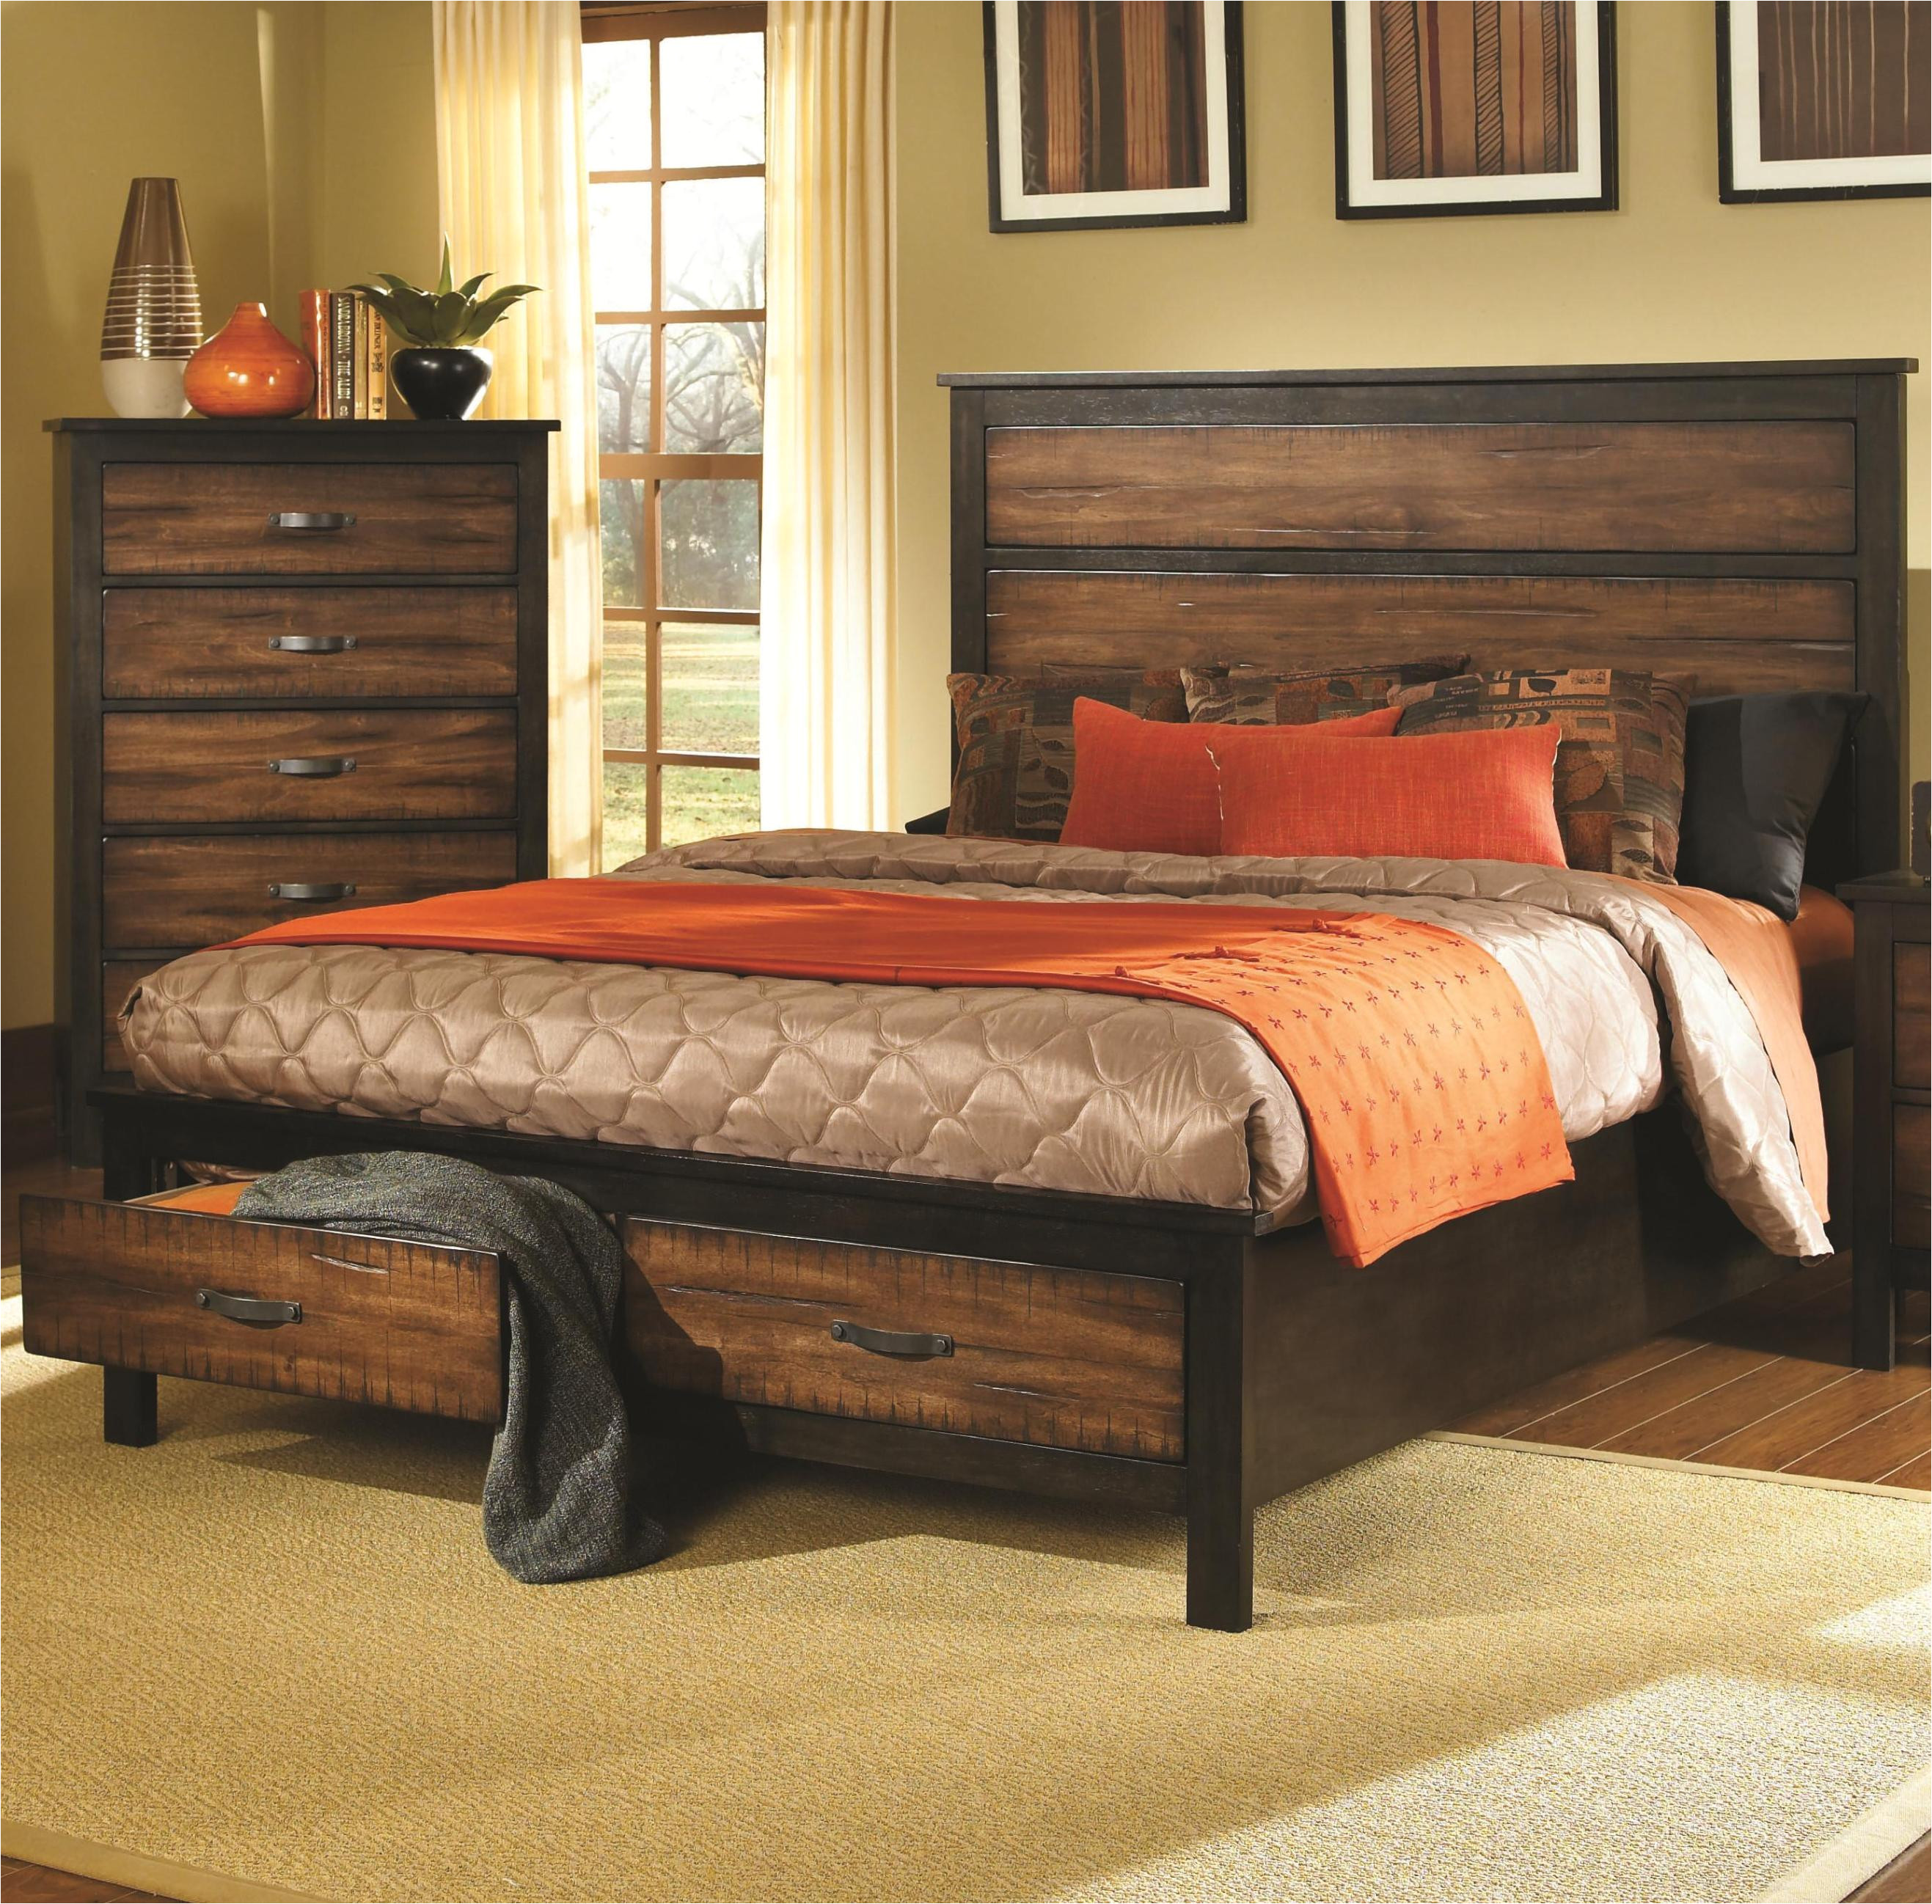 12 photos gallery of stylish california king bed frame with storage